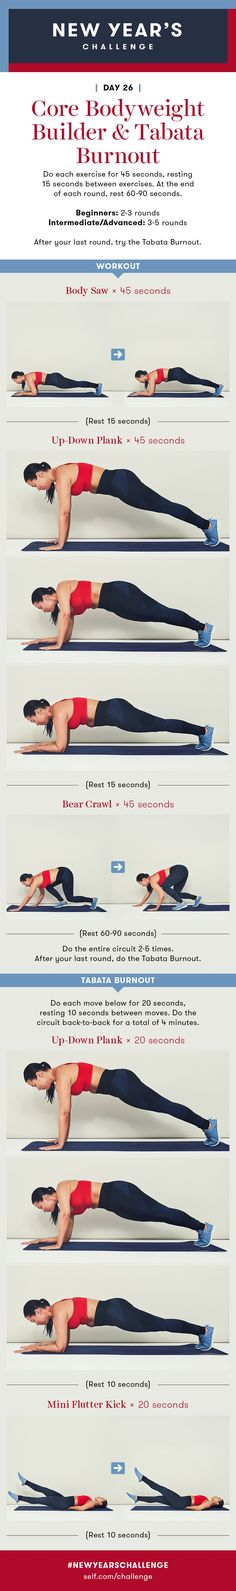 Plank Workout: Core Workout and Tabata Burnout: New Year's Challenge - Day 26 - Fitness Strength Workout, Strength Training, Cleaning Workout, 28 Day Challenge, Flutter Kicks, Plank Workout, Tabata, Cardio, Get In Shape